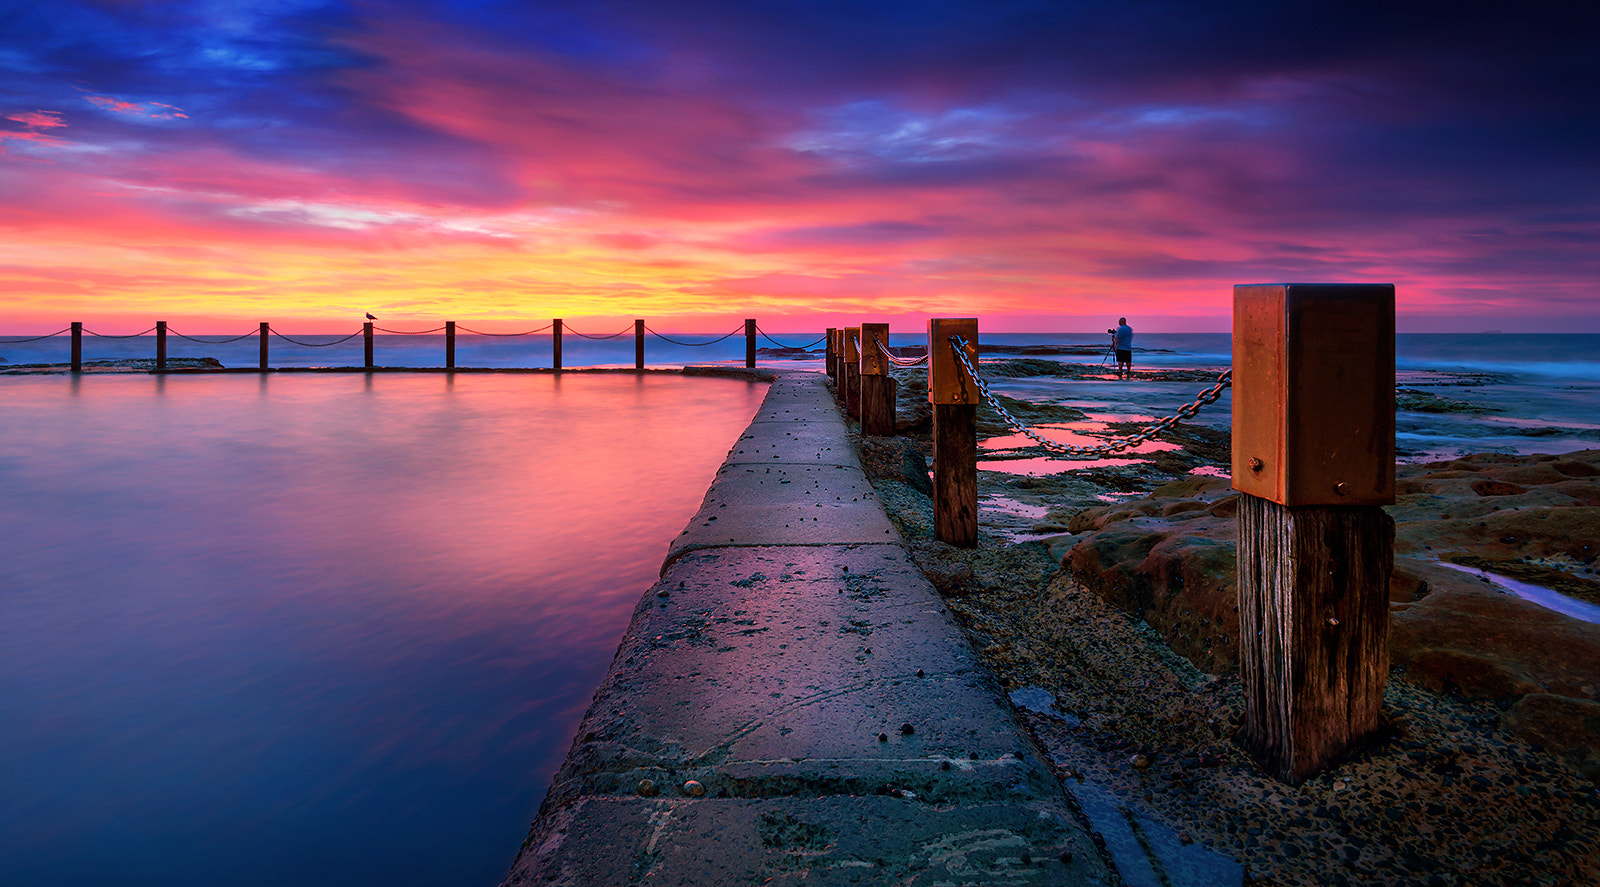 Photograph Sweety Mahon by Goff Kitsawad on 500px